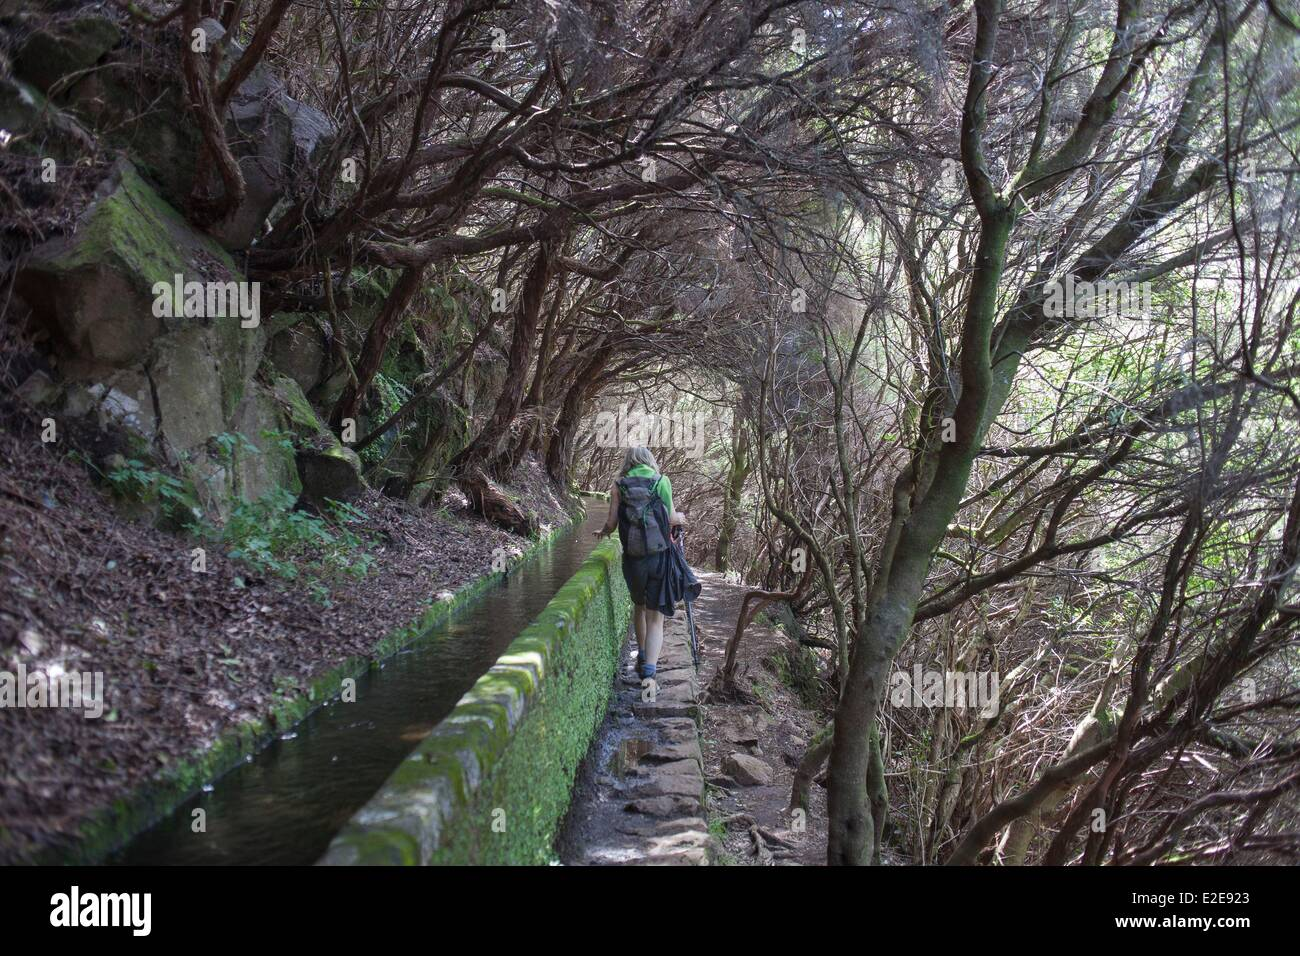 Portugal, Madeira island, hicker on the levada of the 25 springs - Stock Image